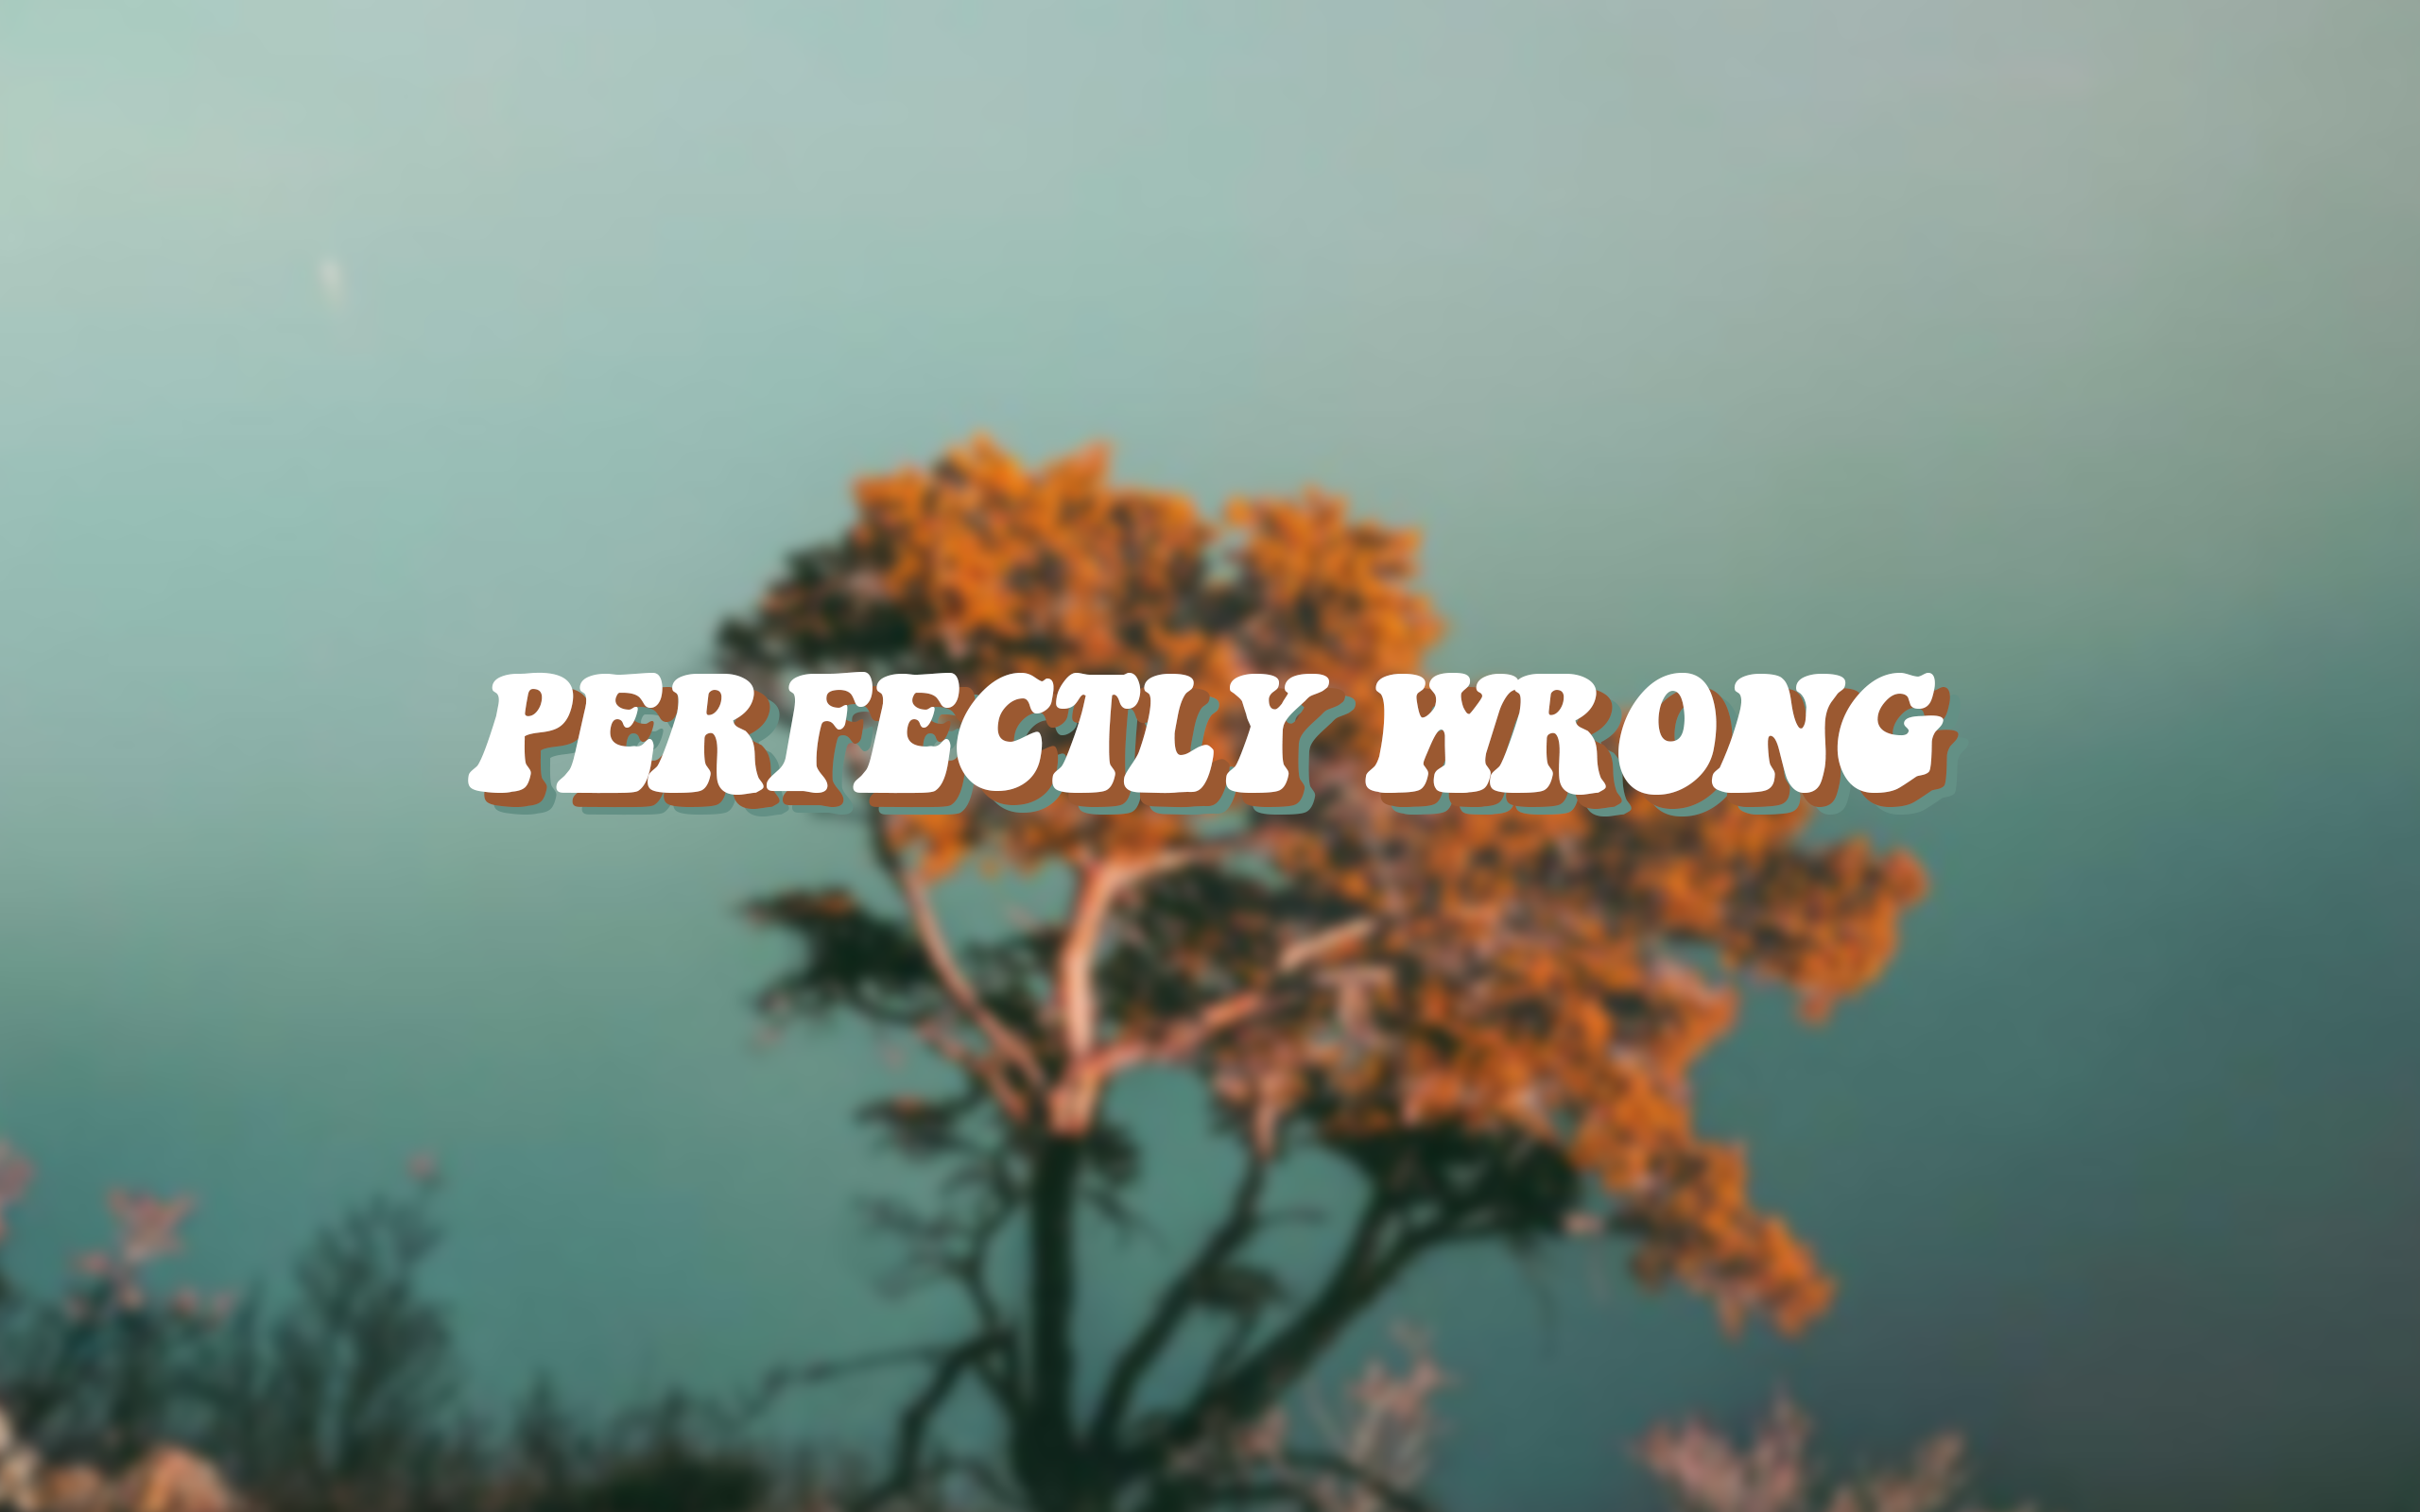 Perfectly Wrong Aesthetic Wallpaper Aesthetic Desktop Wallpaper Vintage Desktop Wallpapers Desktop Wallpaper Art